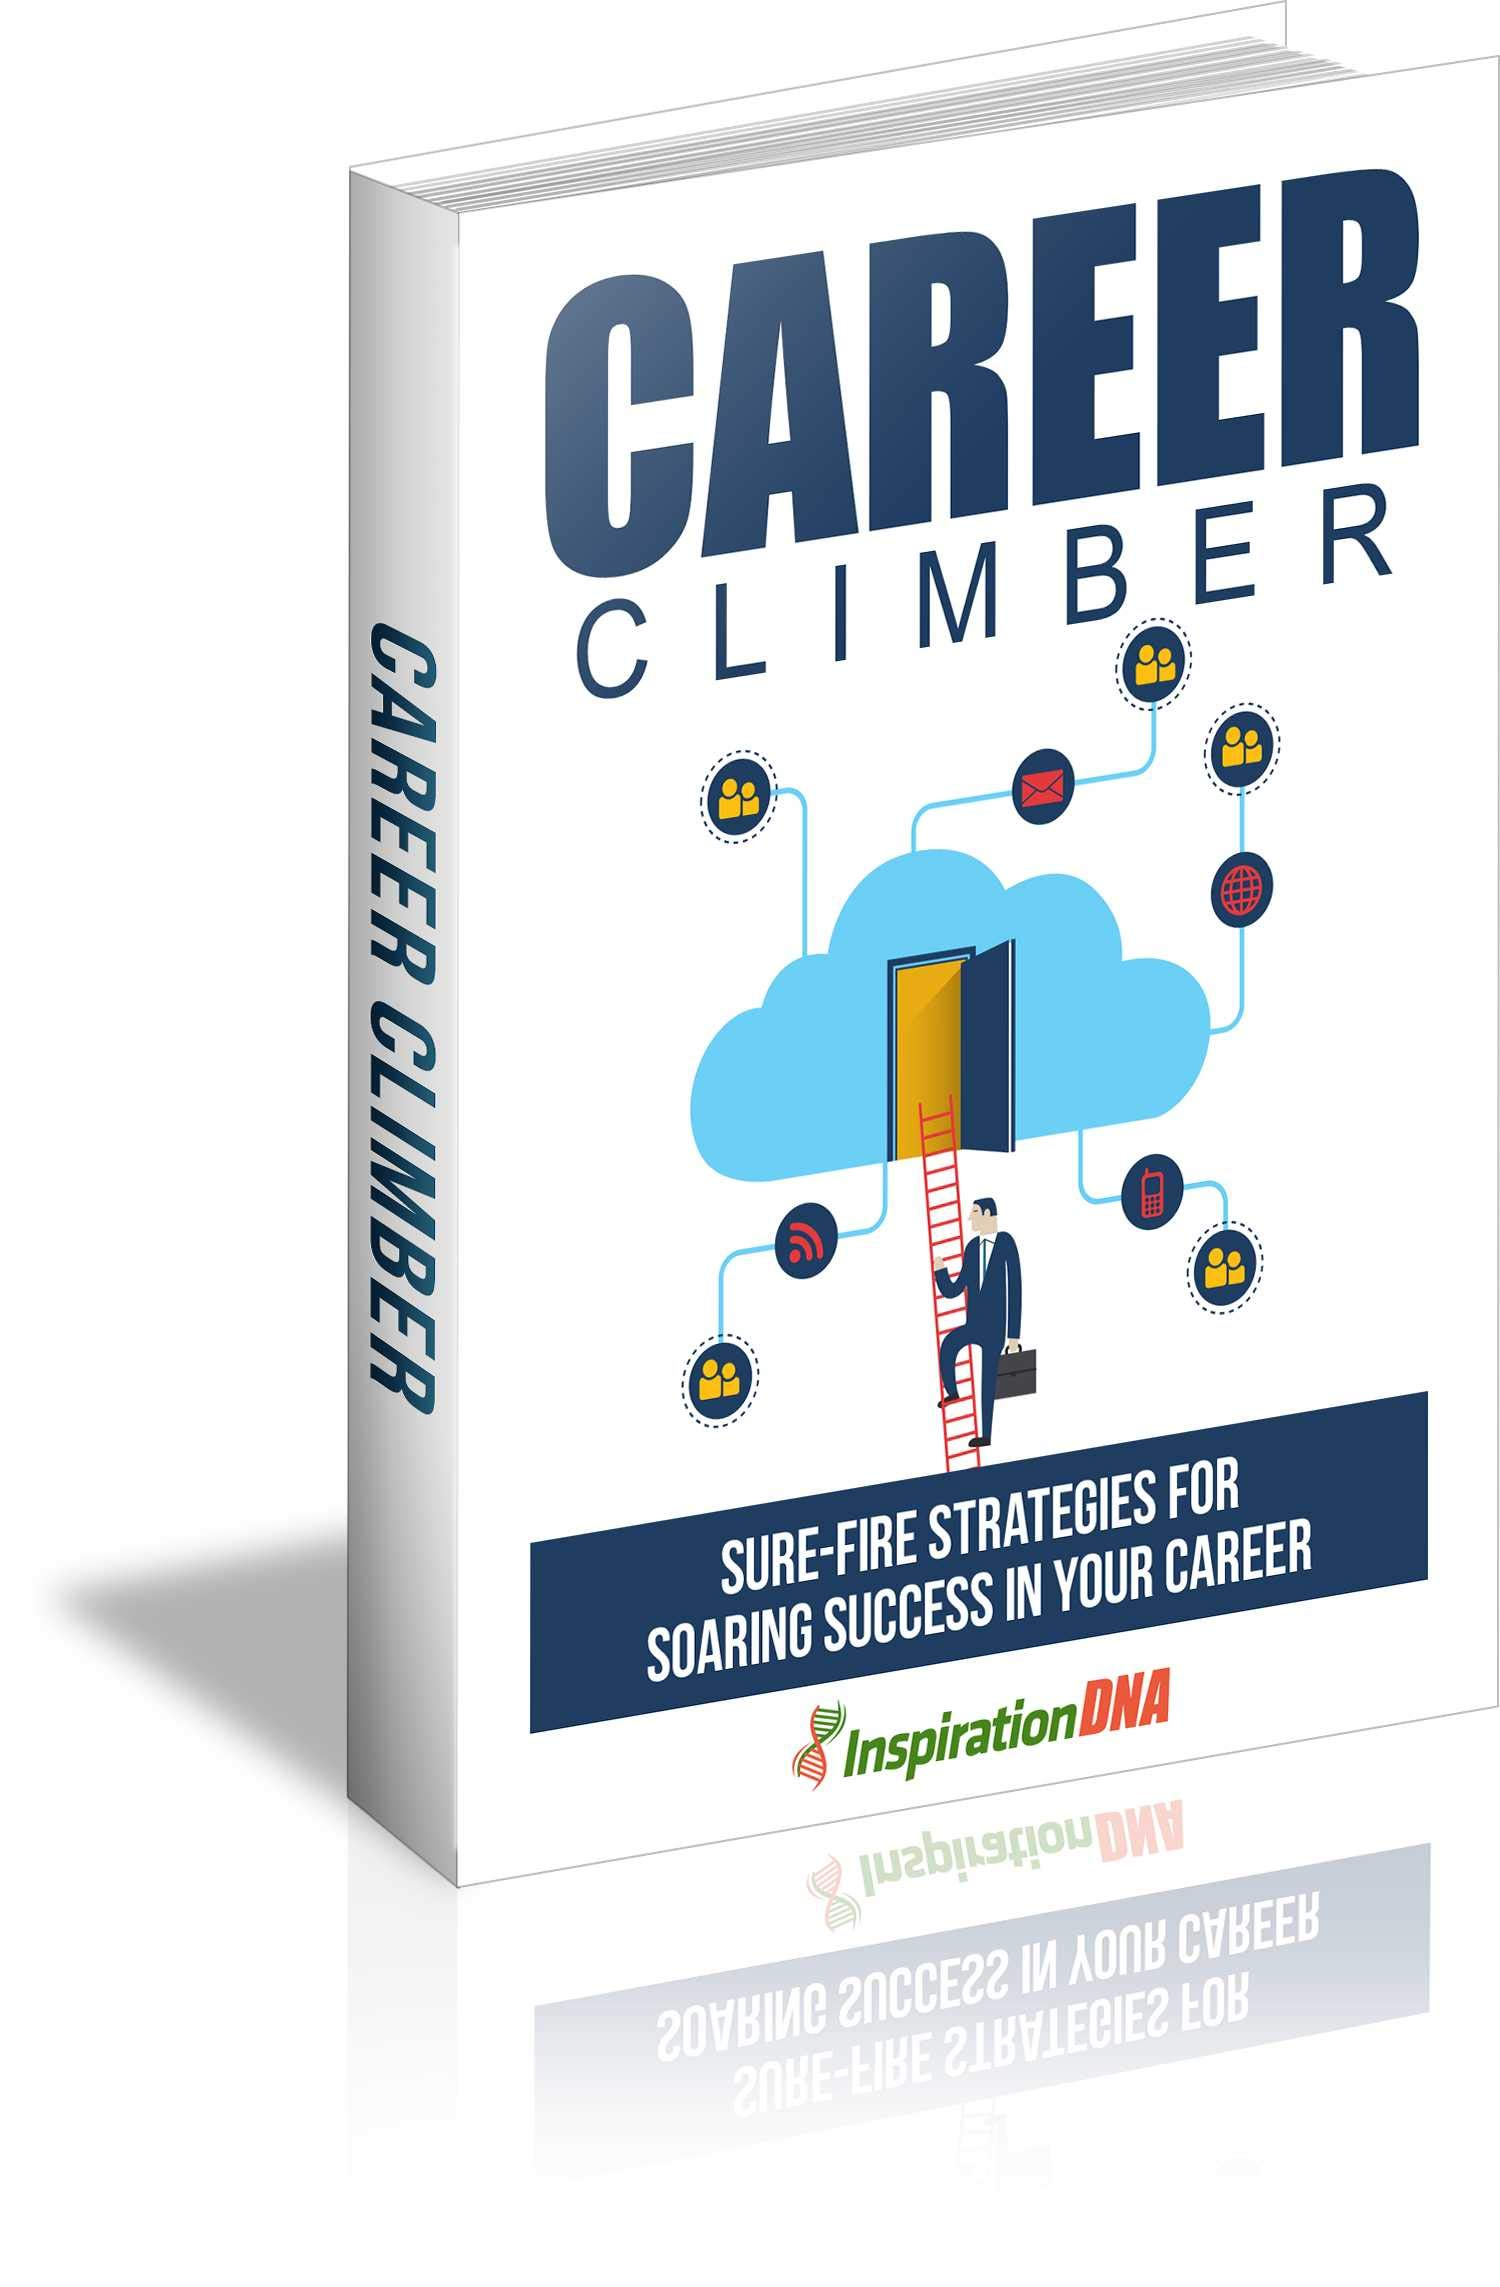 Career Climber: Sure-fire Strategies For Soaring Success In Your Career